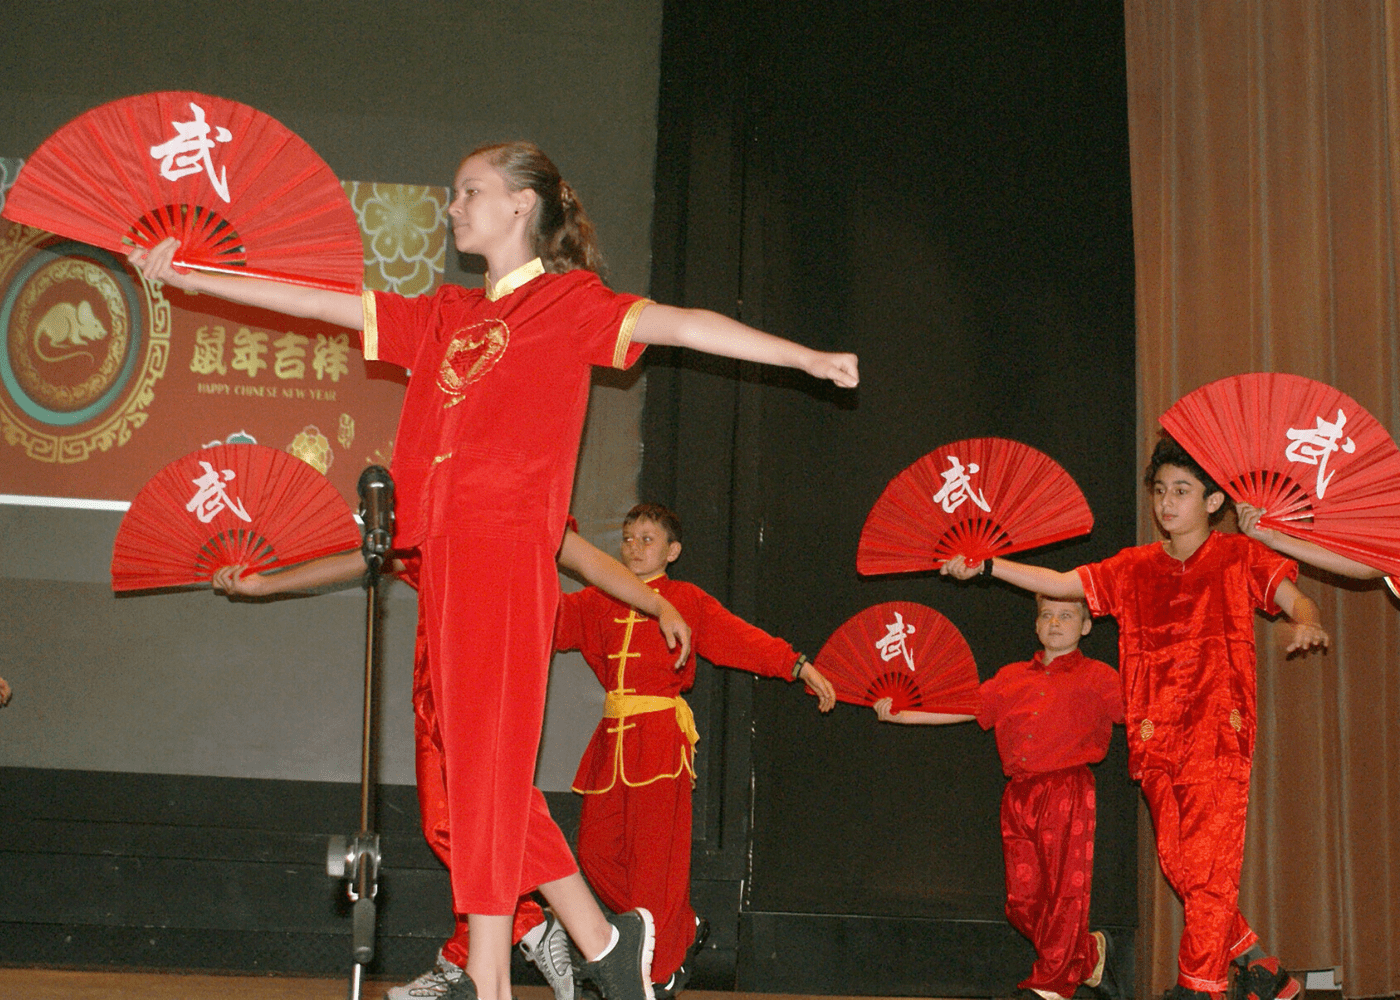 Discover how Invictus International School's new bilingual primary school can help your child learn Chinese